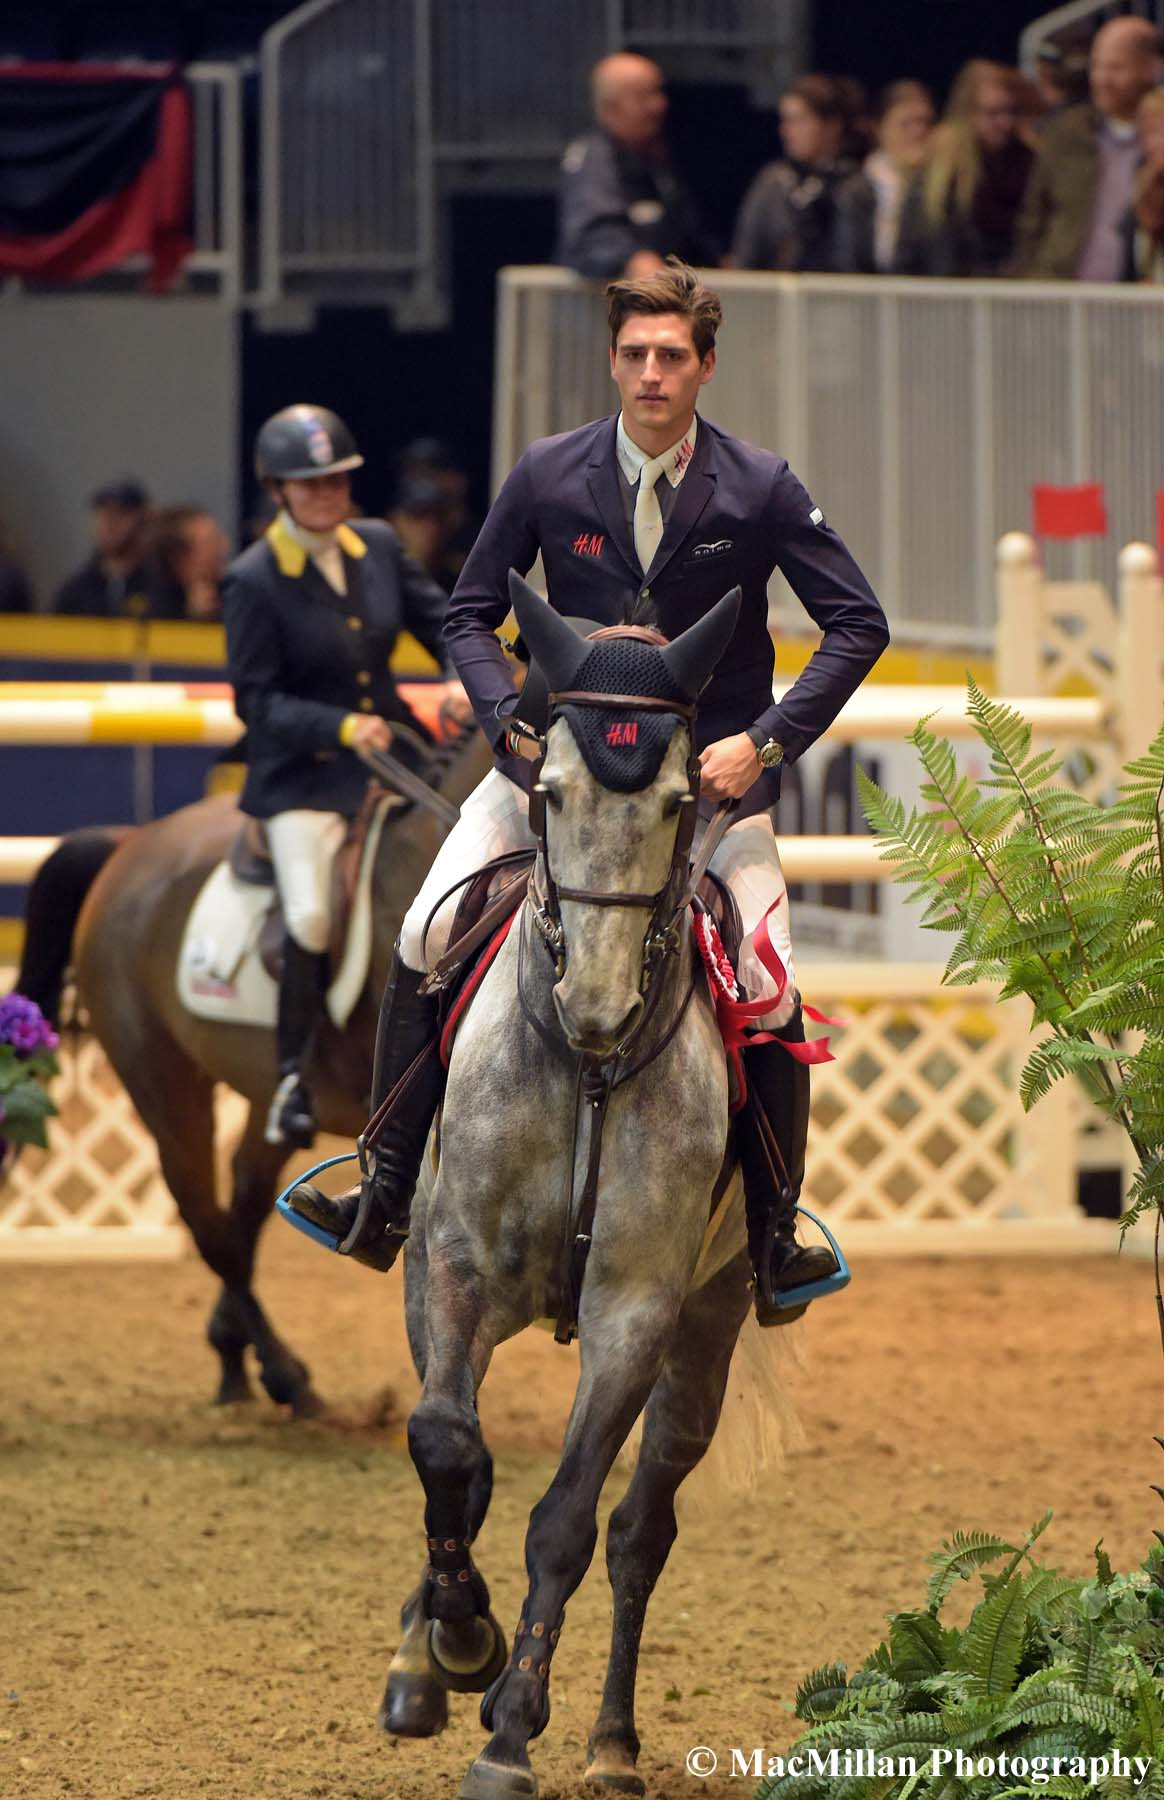 Photo 5 - Belgian rider Nicola Philippaerts won the Canadian Weston Open Jumper class with the lovely grey gelding H&M Harley VD Bisschop on the final Friday of the 2015 Royal Horse Show. Nicola's twin brother Olivier also competed in the jumper classes at the Royal.Photo by Sarah Miller/MacMillan Photography